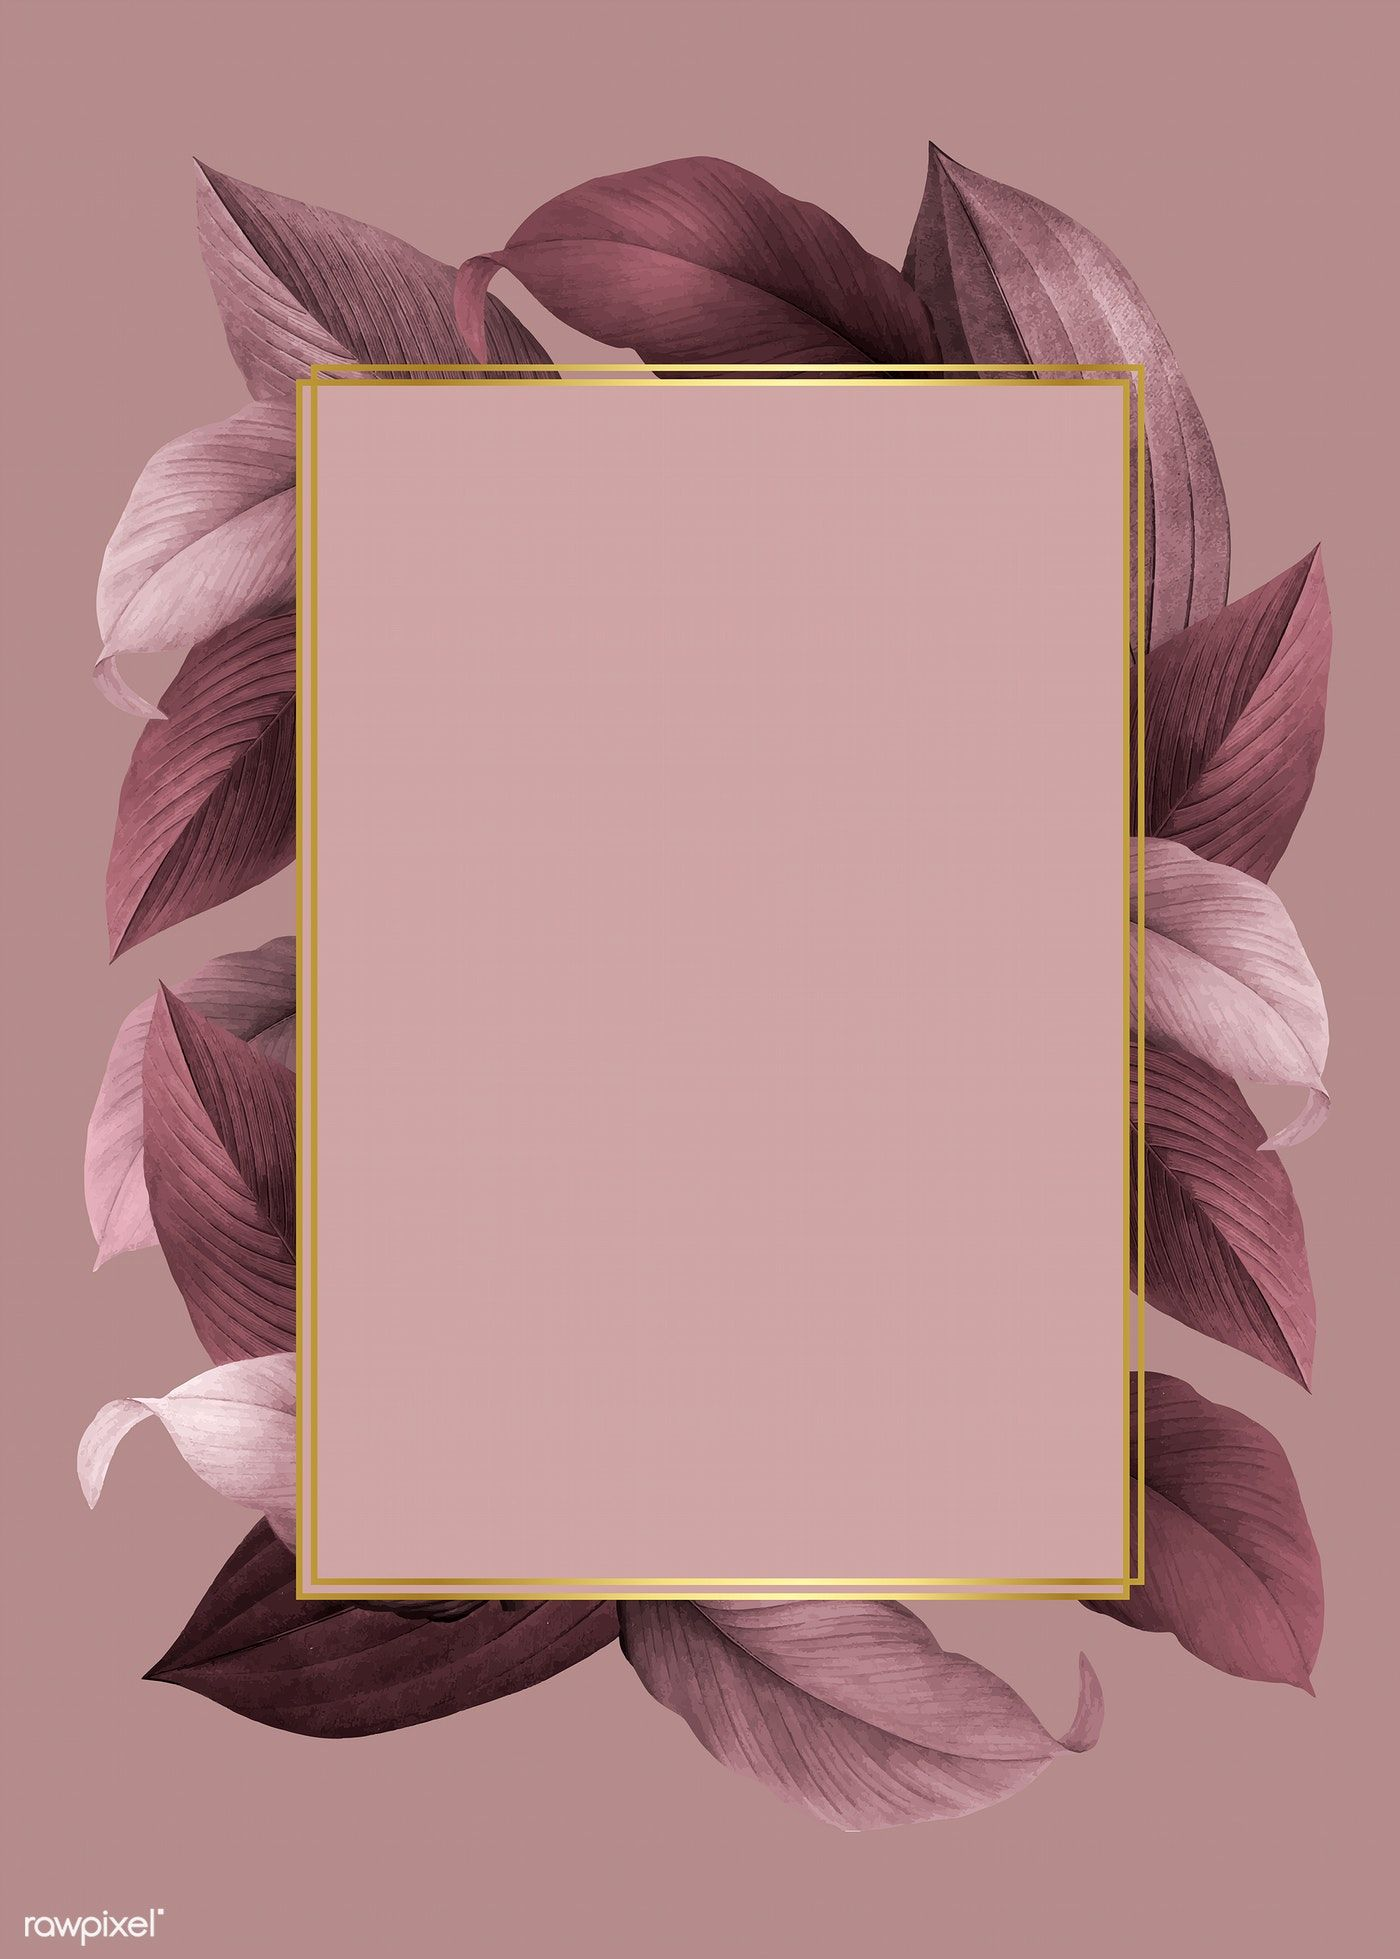 Golden Frame On A Pink Leafy Background Vector Free Image By